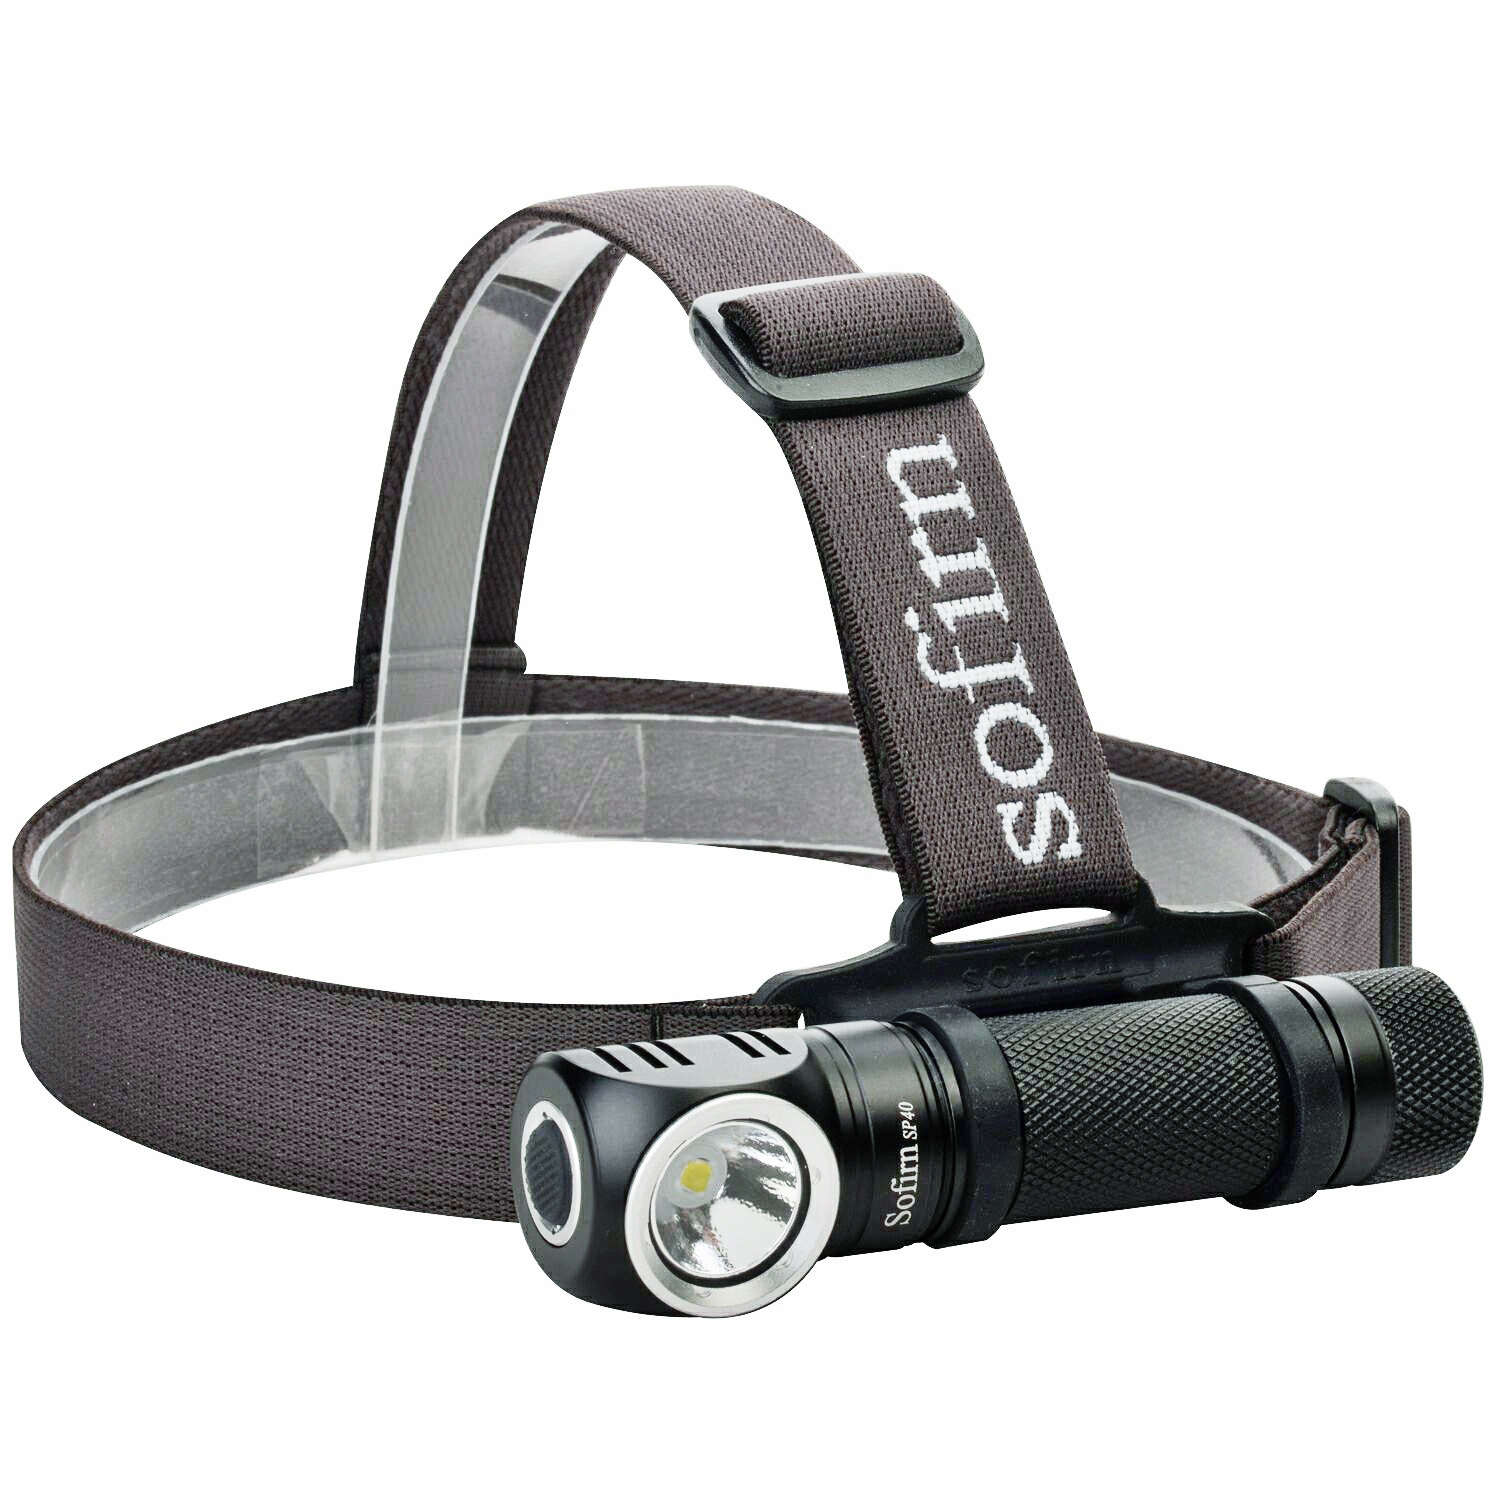 1200lm Bright Outdoor Fishing Headlight Magnet Tail Cap